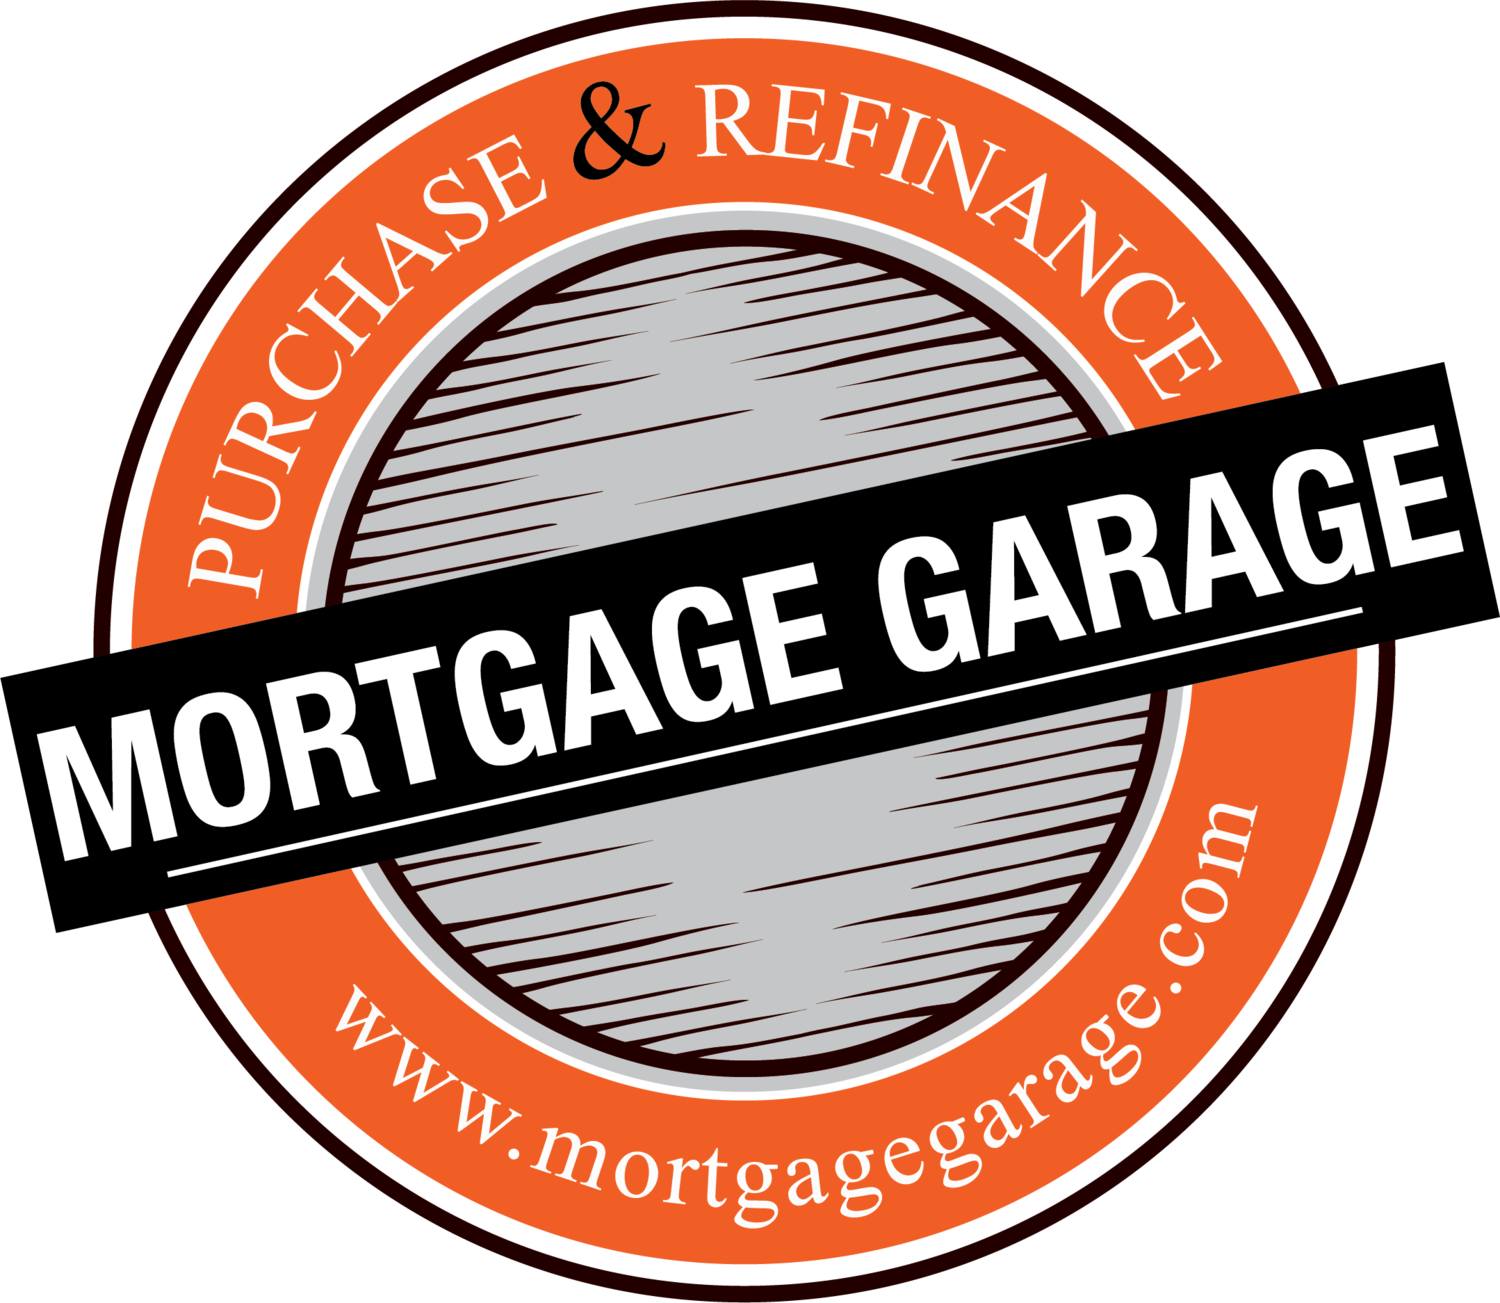 Mortgage Garage